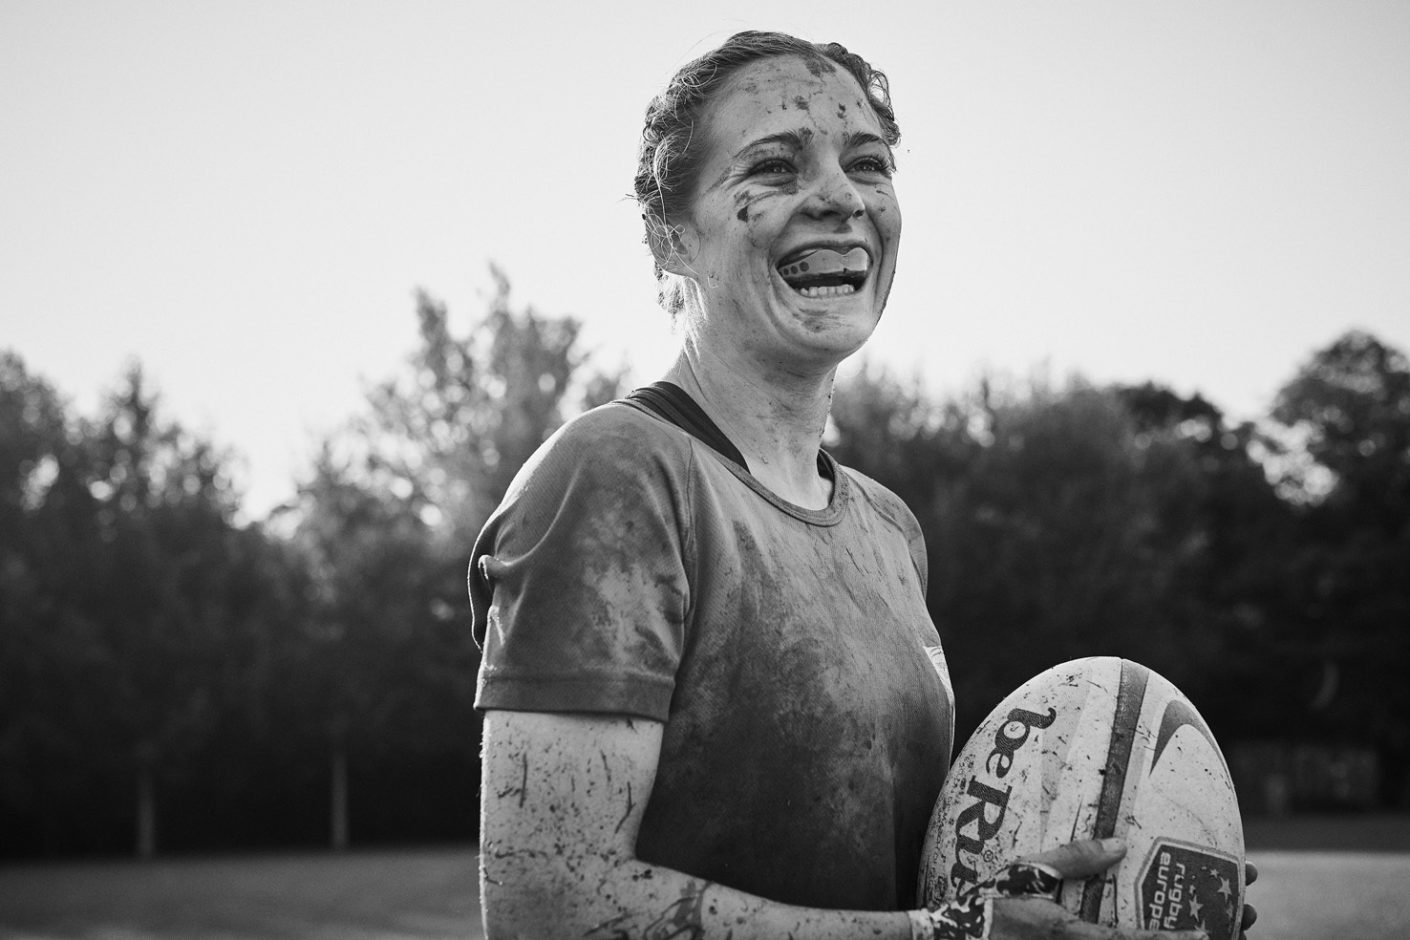 Sometimes Football and mud instead of high heels and eyeliner: The outdated role pictures of the advertising industry urgently need a refresher.